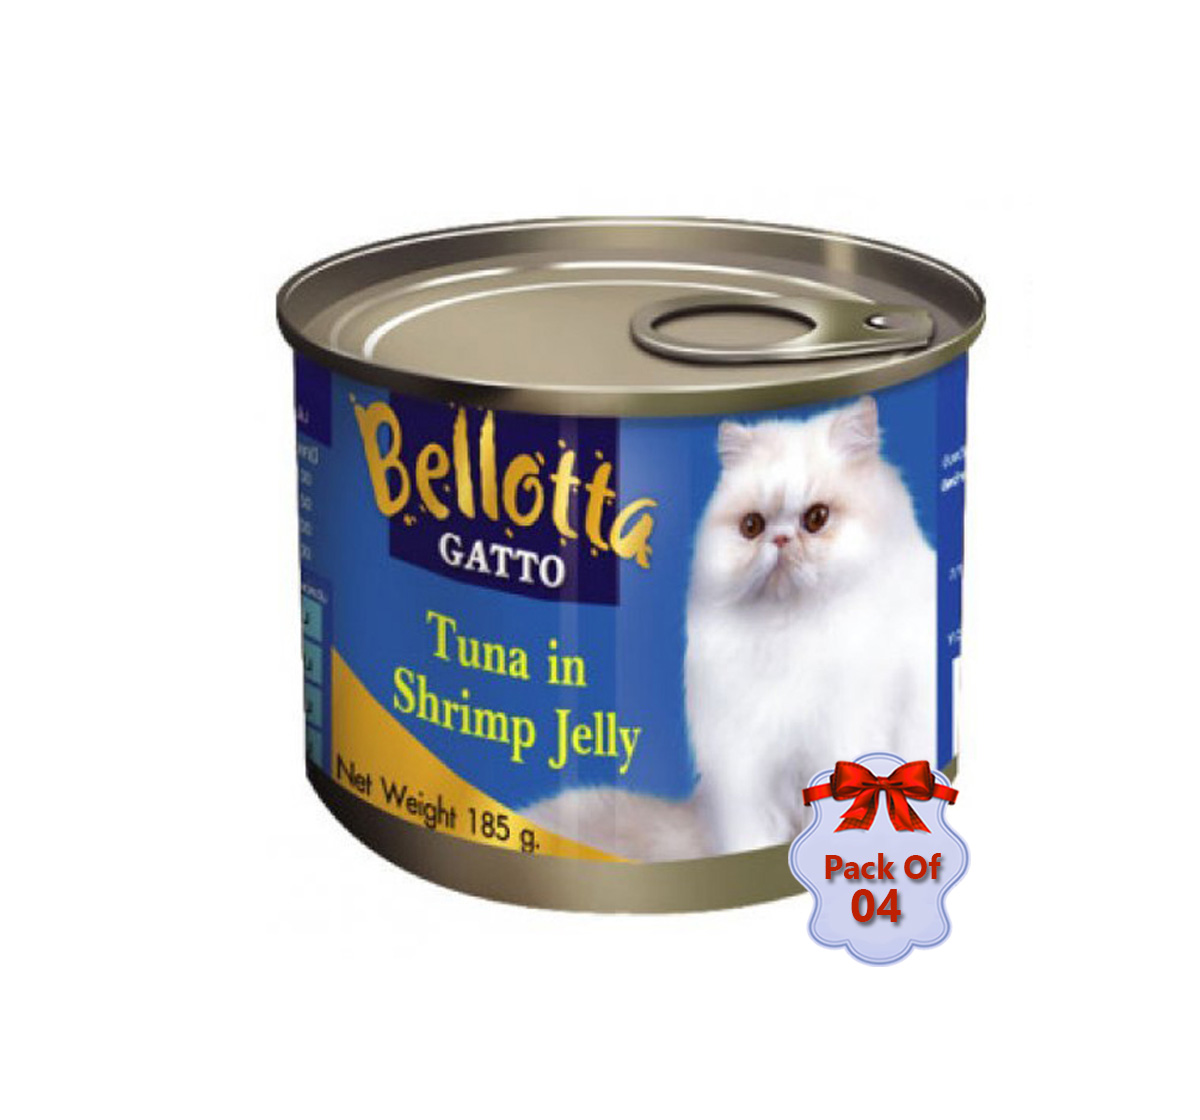 Bellotta Gatto Tuna In Shrimp Jelly - 185 gm (Pack Of 4)